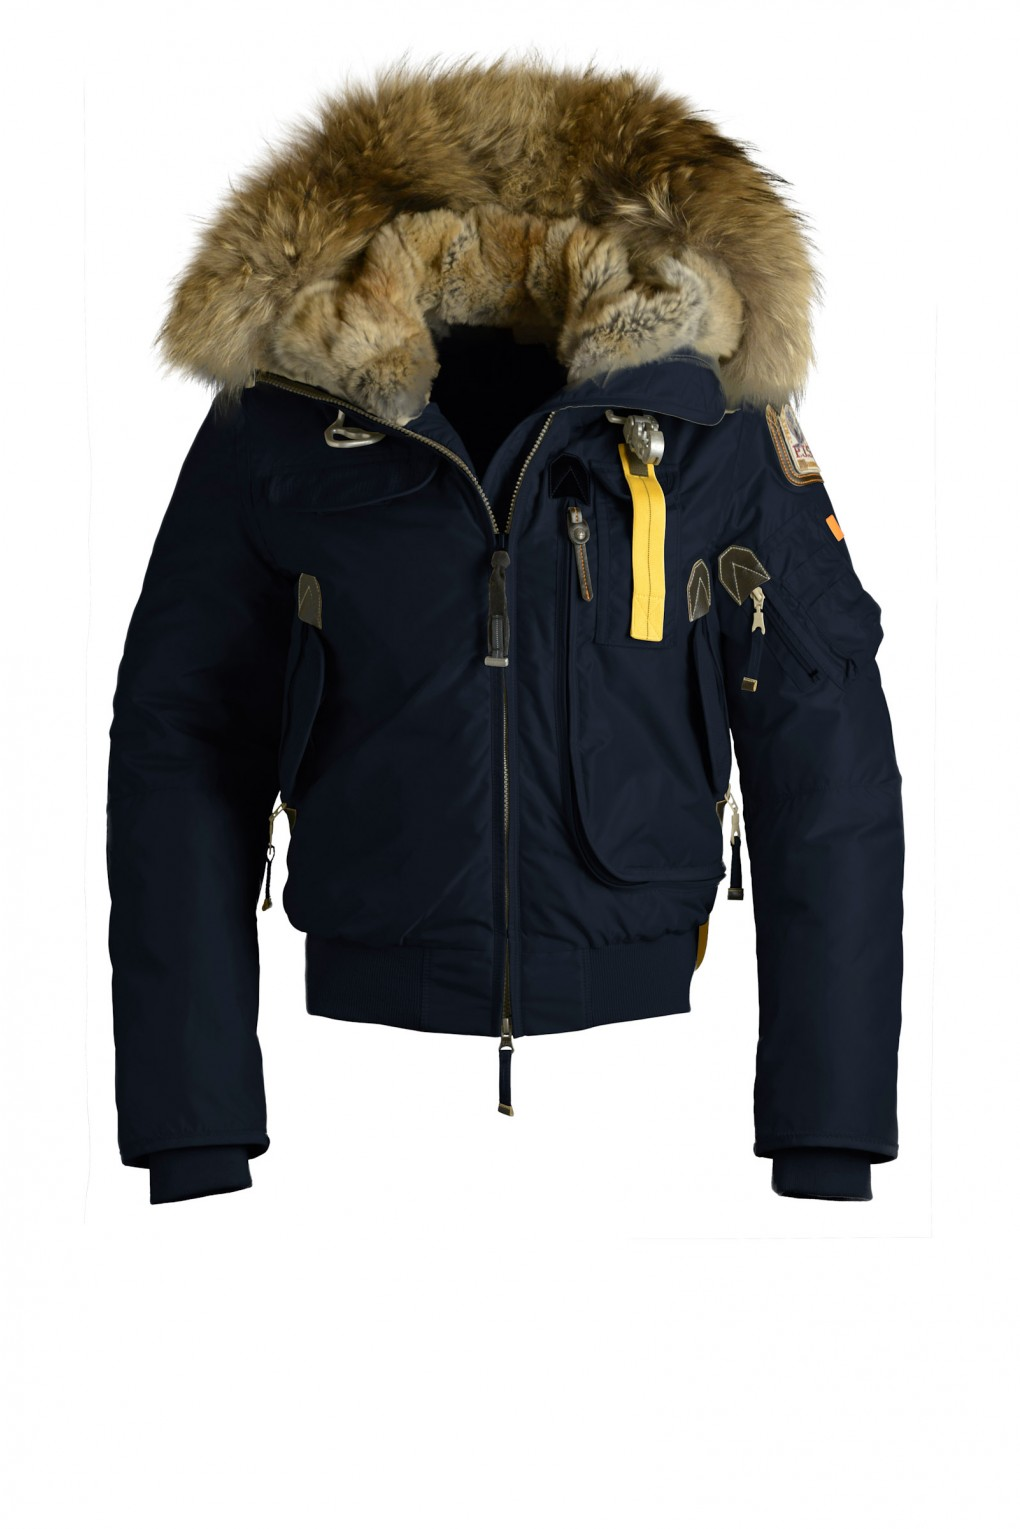 parajumpers GOBI woman outerwear Navy